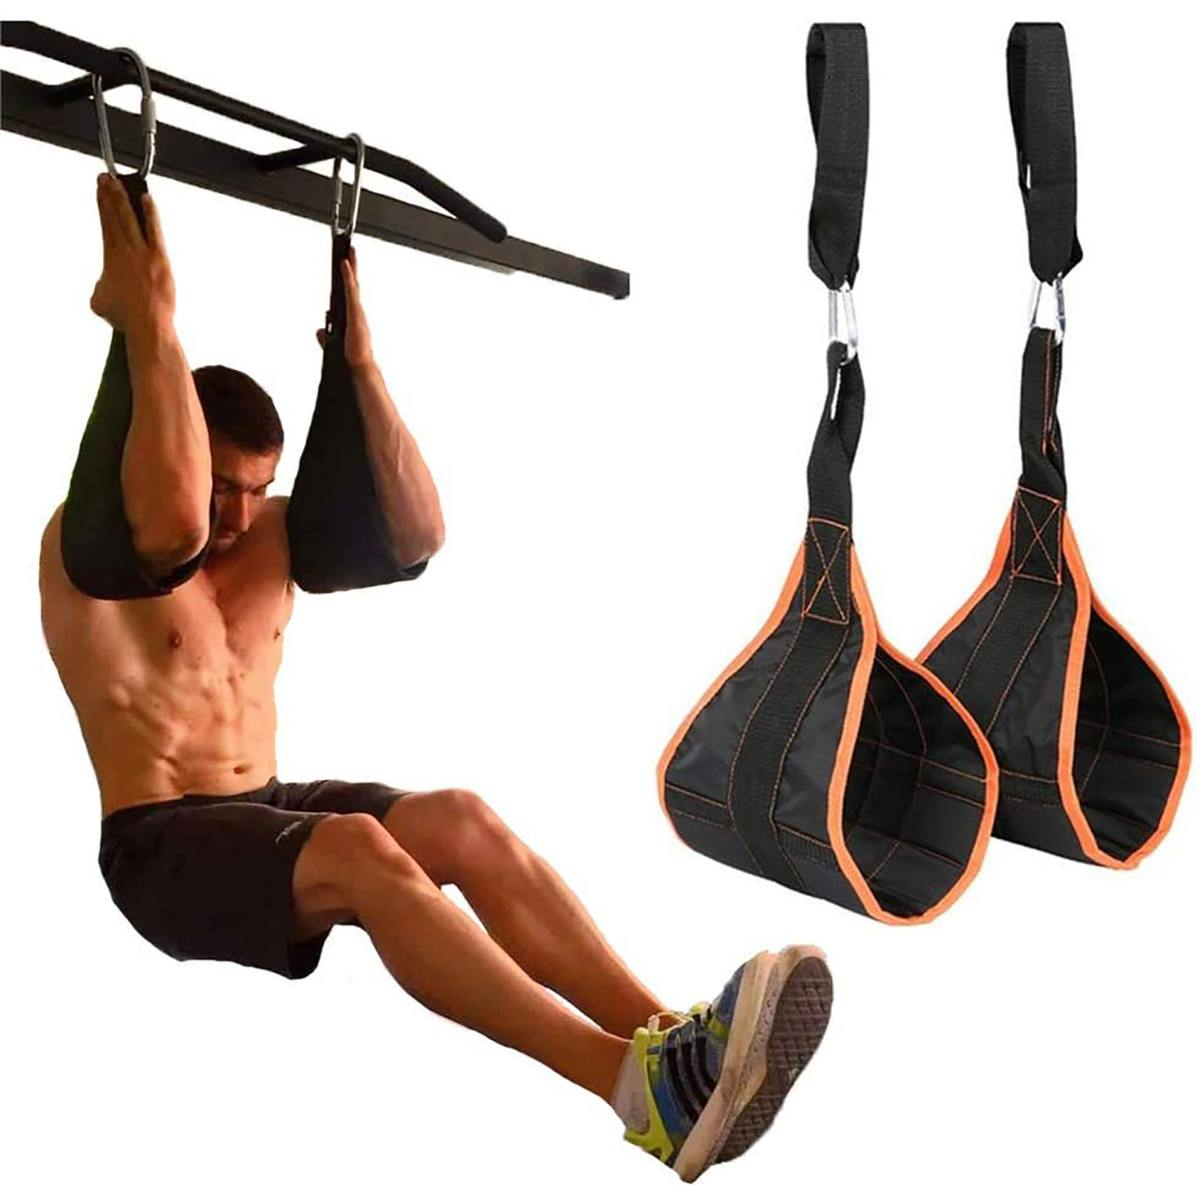 Pull Up Bar Sling Straps Hanging Ab Trainer Abdominal Exerciser Home Gym Workout